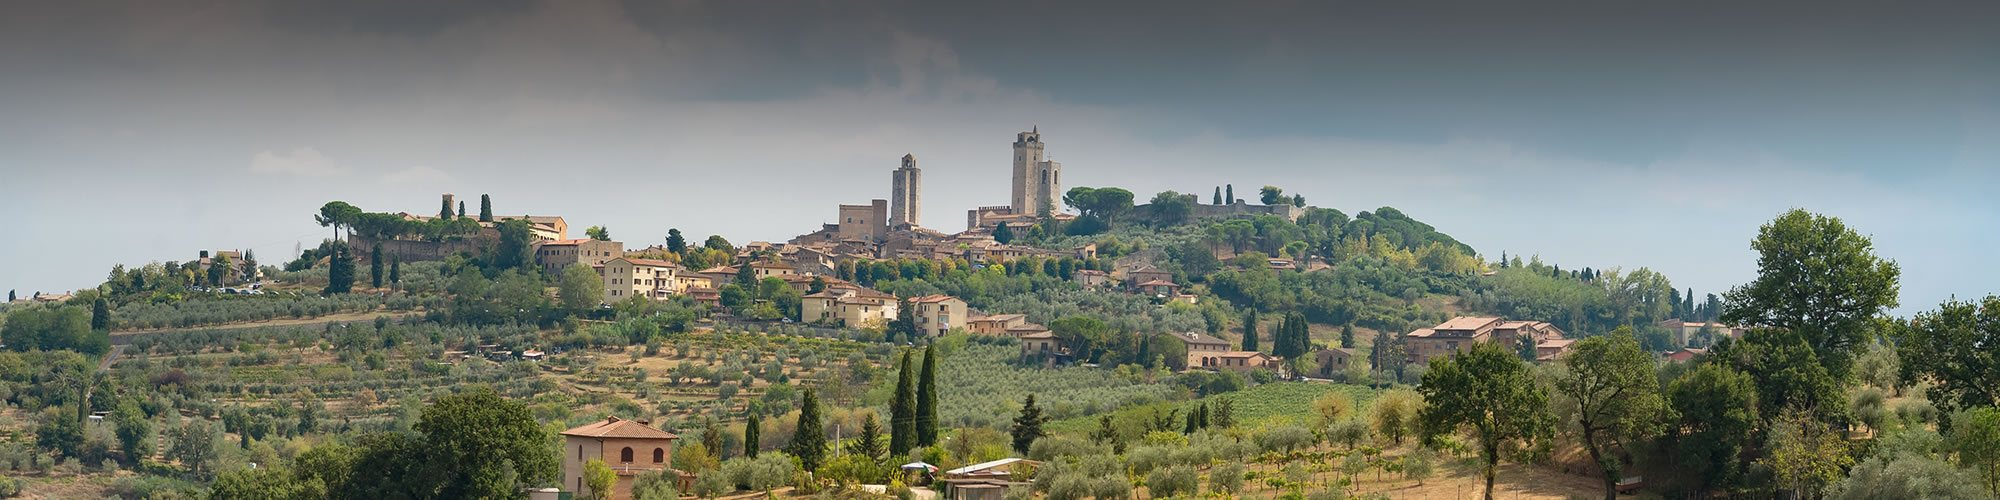 San Gimignano and hinterland